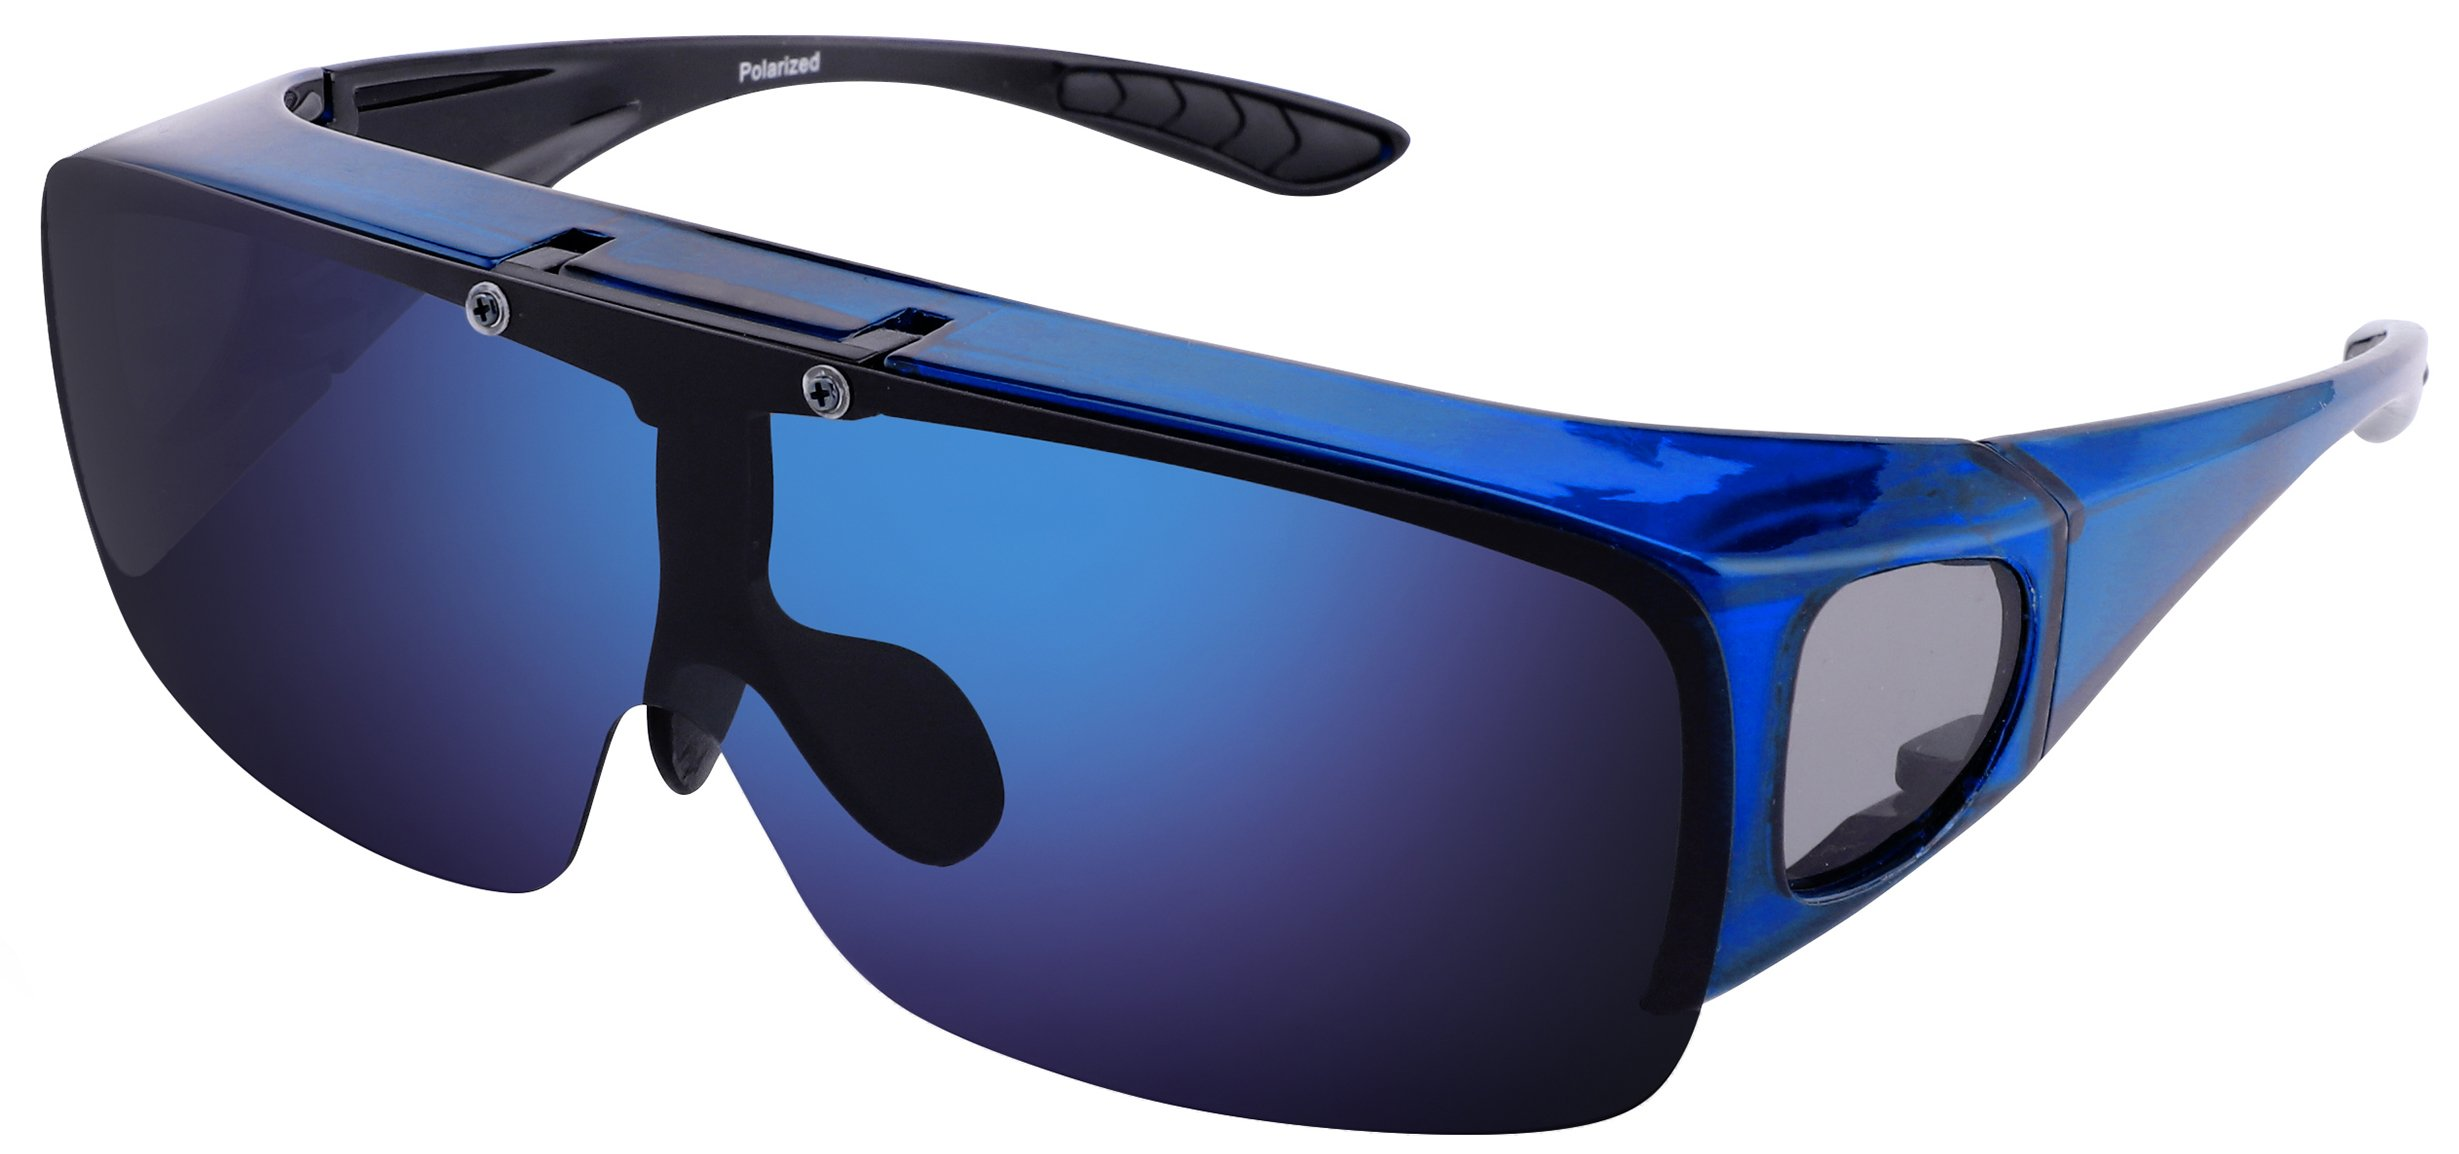 TINHAO Mens Polarized Flip Up Fitover Sunglasses with Mirrored Lenses (Blue, Blue)